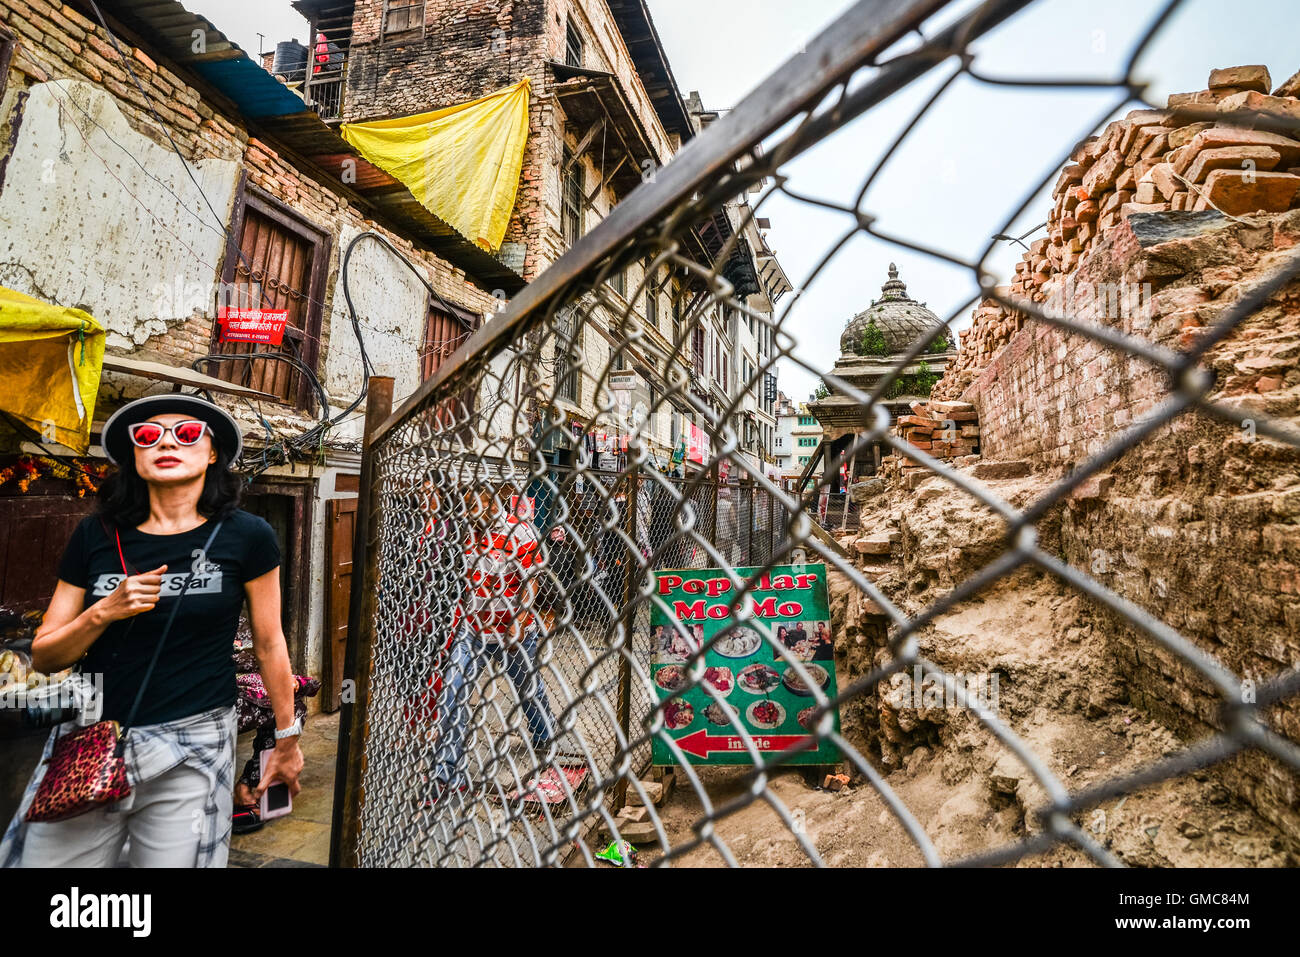 East asian tourist passes through an alley near a damaged historical building in Durbar Square, Kathmandu. © - Stock Image